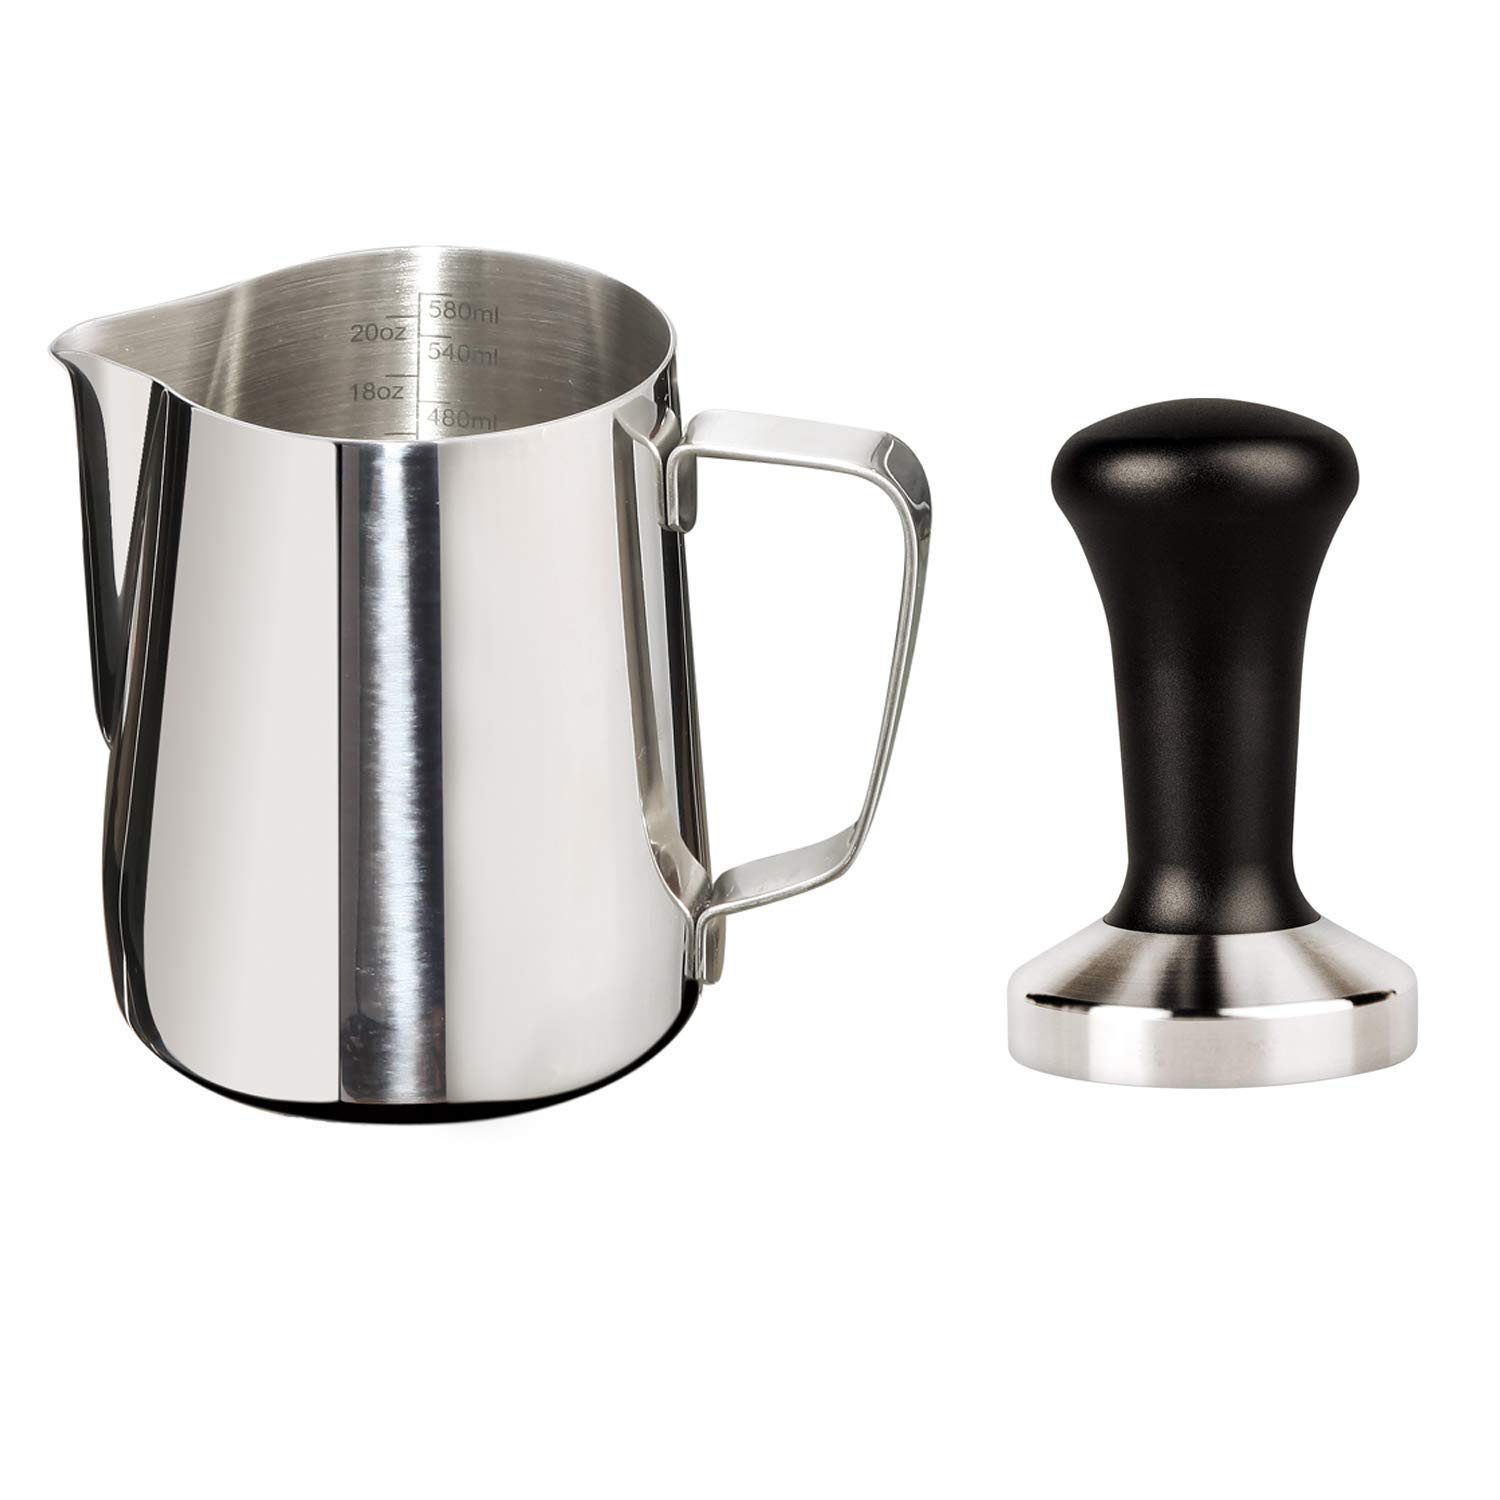 Joytata 20oz Milk Frothing Pitcher 58mm Stainless Steel Base Espresso Tamper-Milk Pitcher with Measurement Scale Stainless Steel Steam Pitcher Coffee Tamper Set Perfect for Espresso Machine-Froth Cup